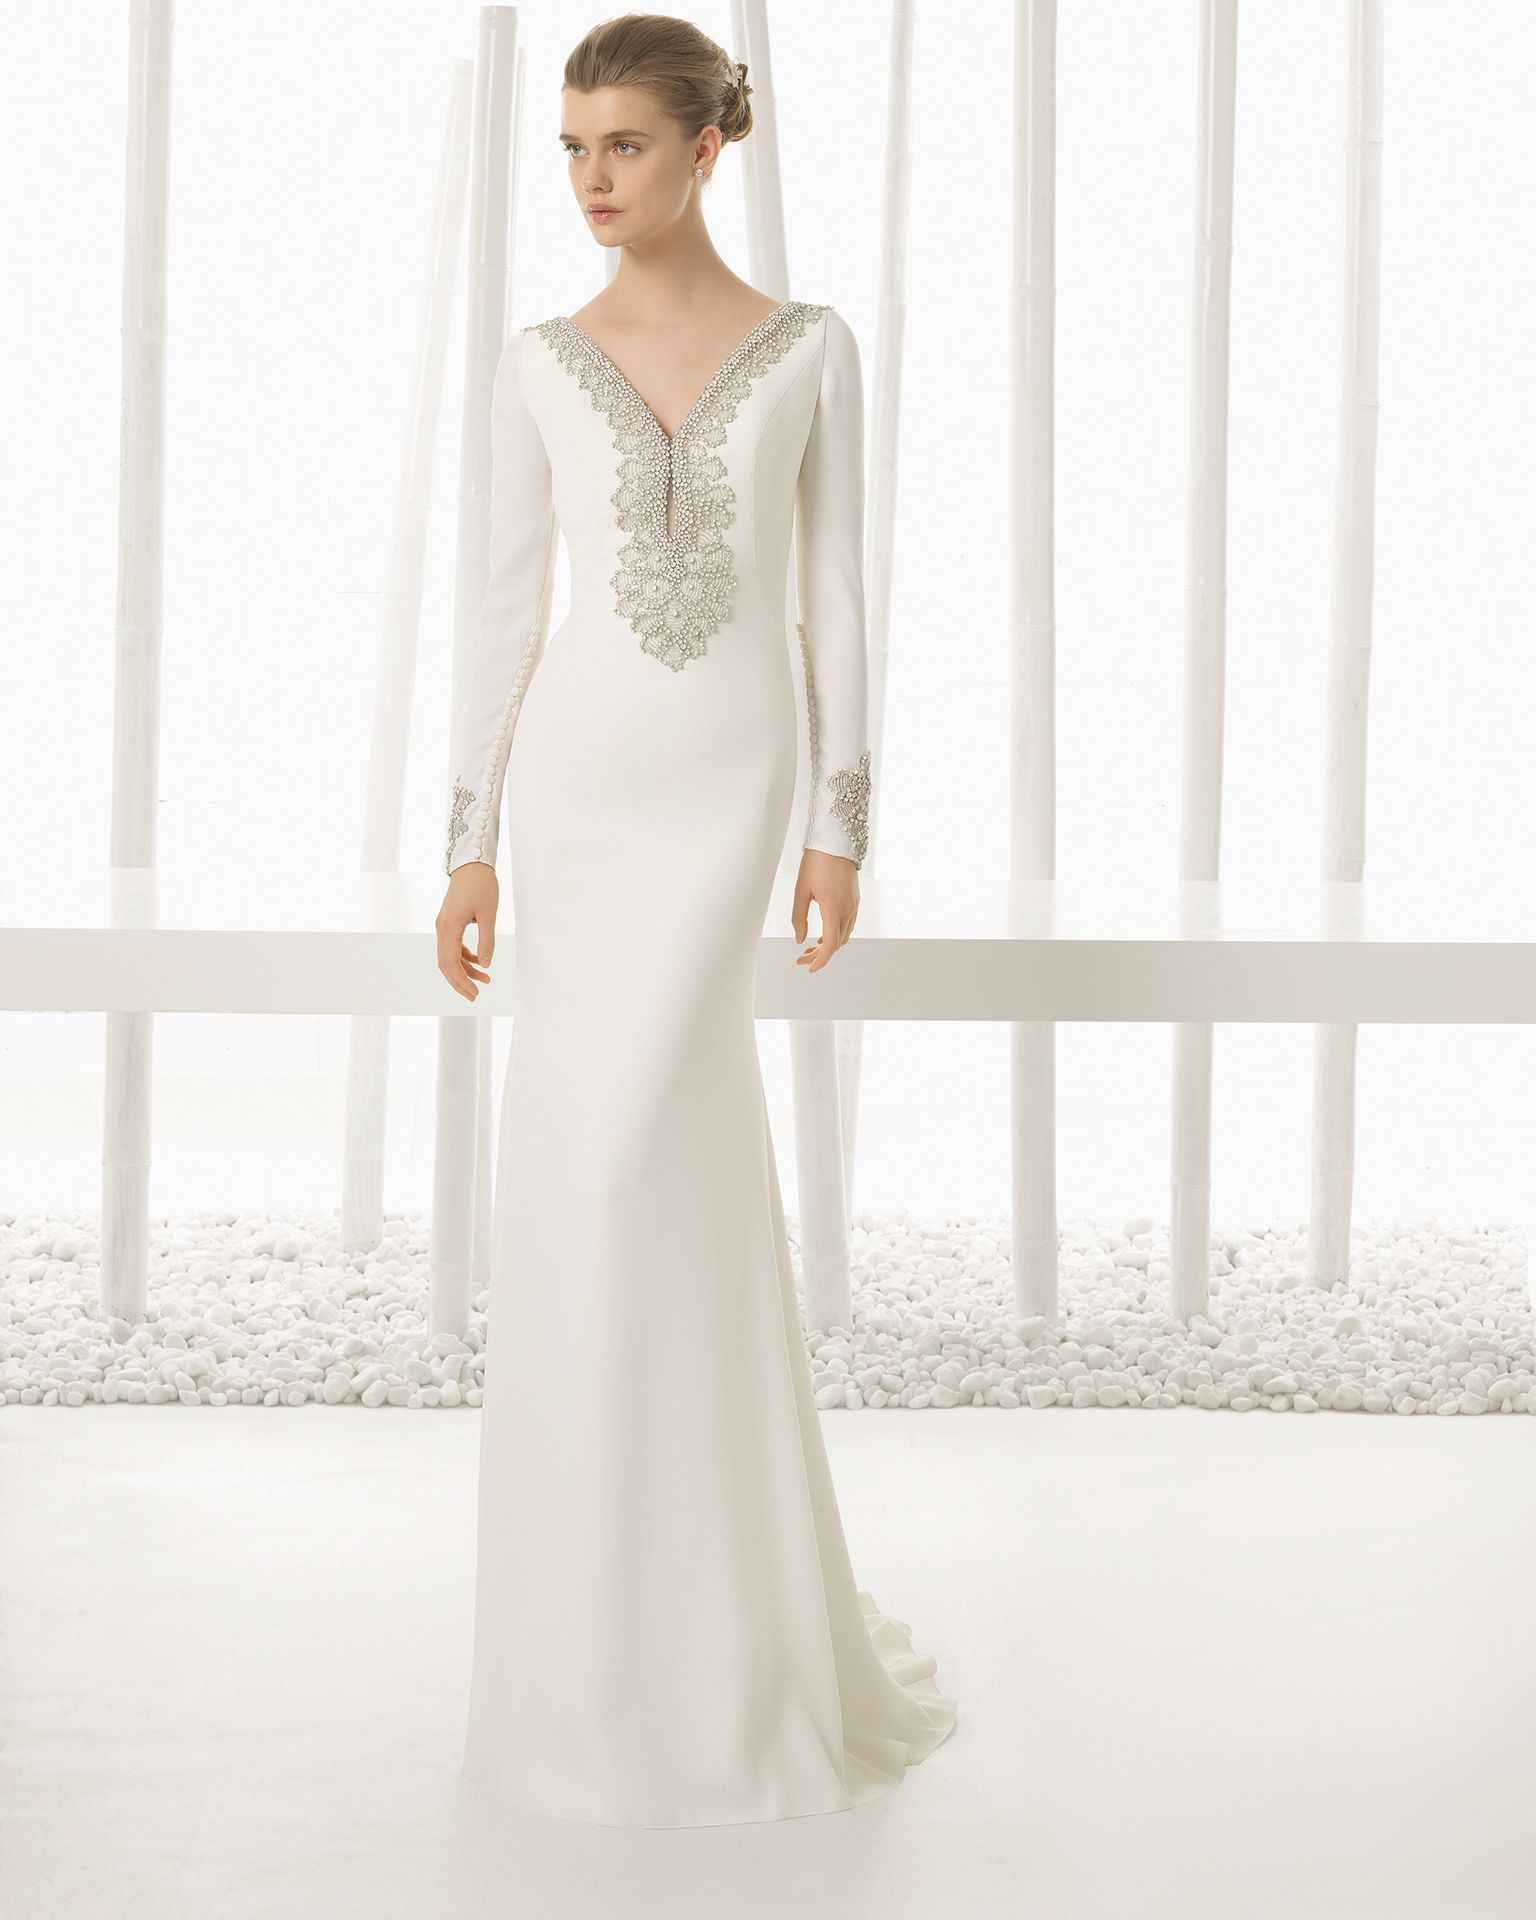 Denver - Rosa Clará 2016 Bridal Collection | Bridal collection ...